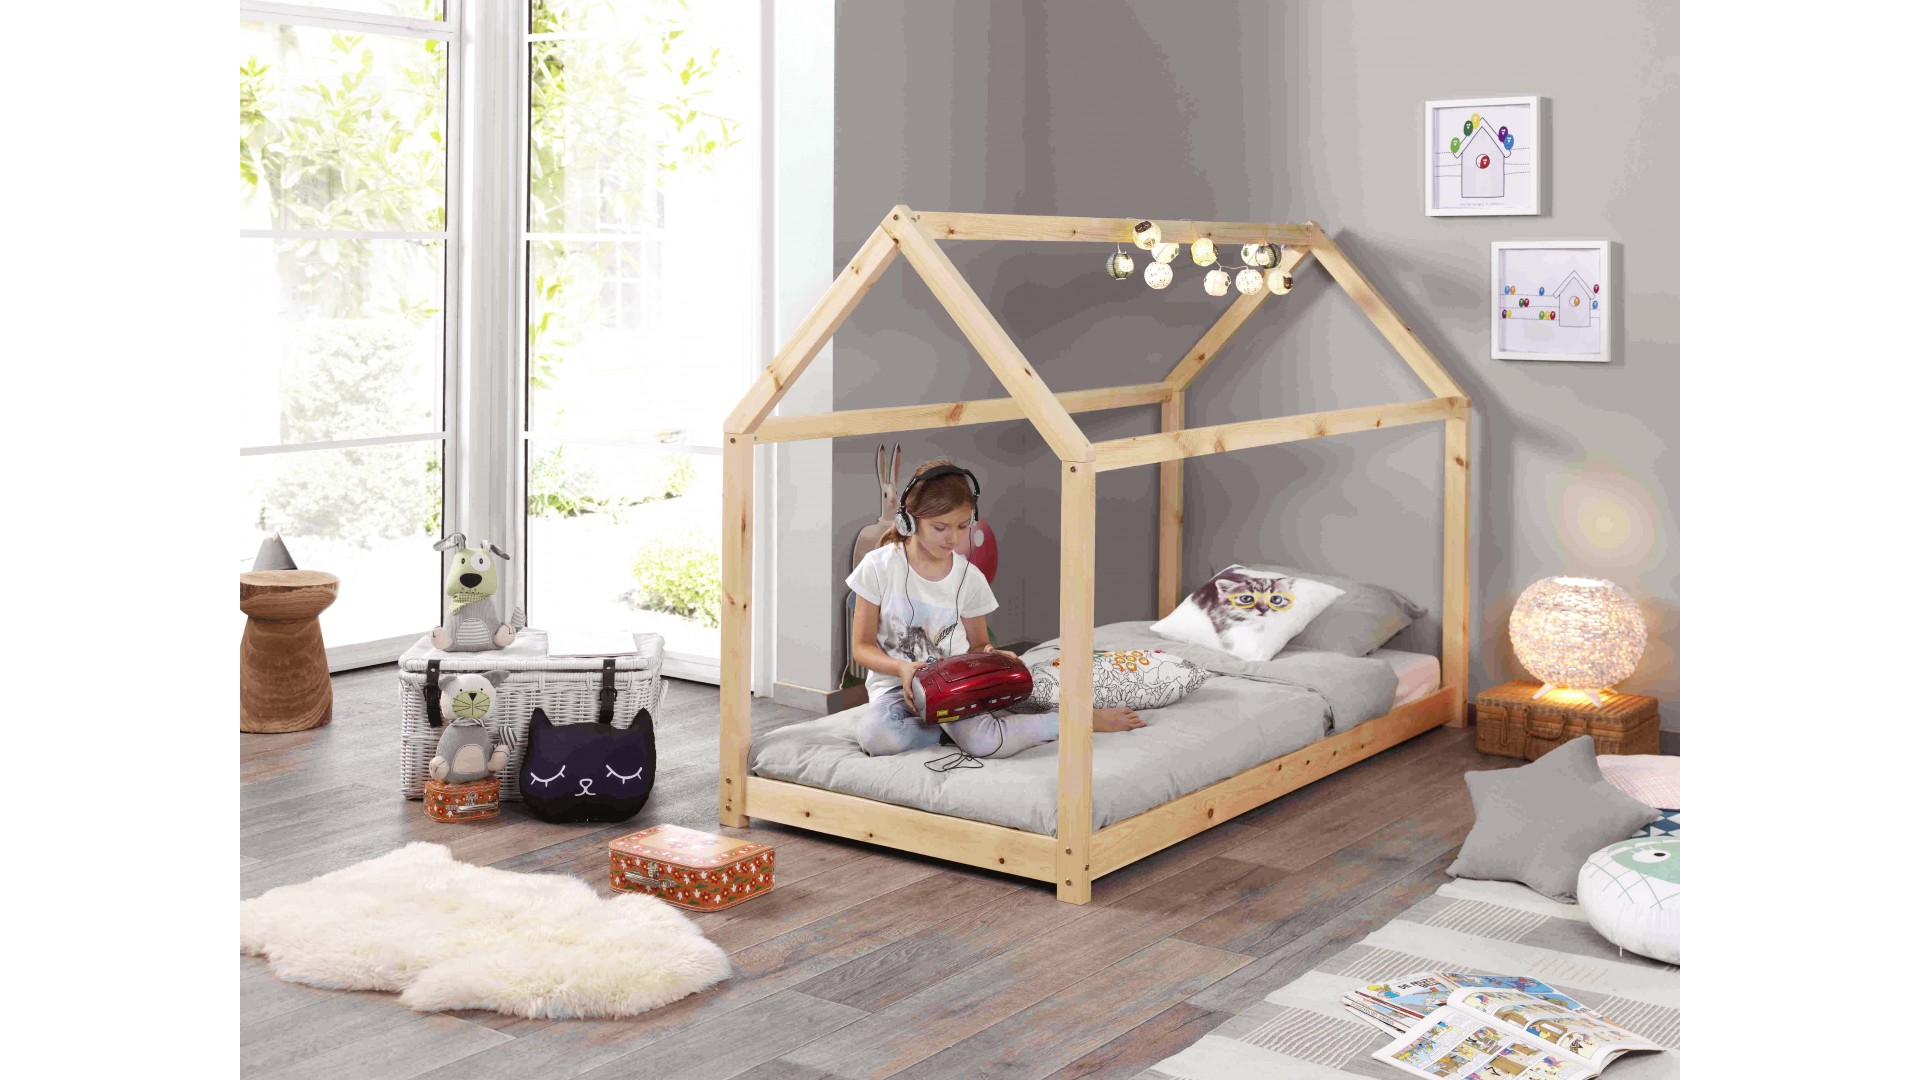 lit cabane enfant elea original en pin massif so nuit. Black Bedroom Furniture Sets. Home Design Ideas